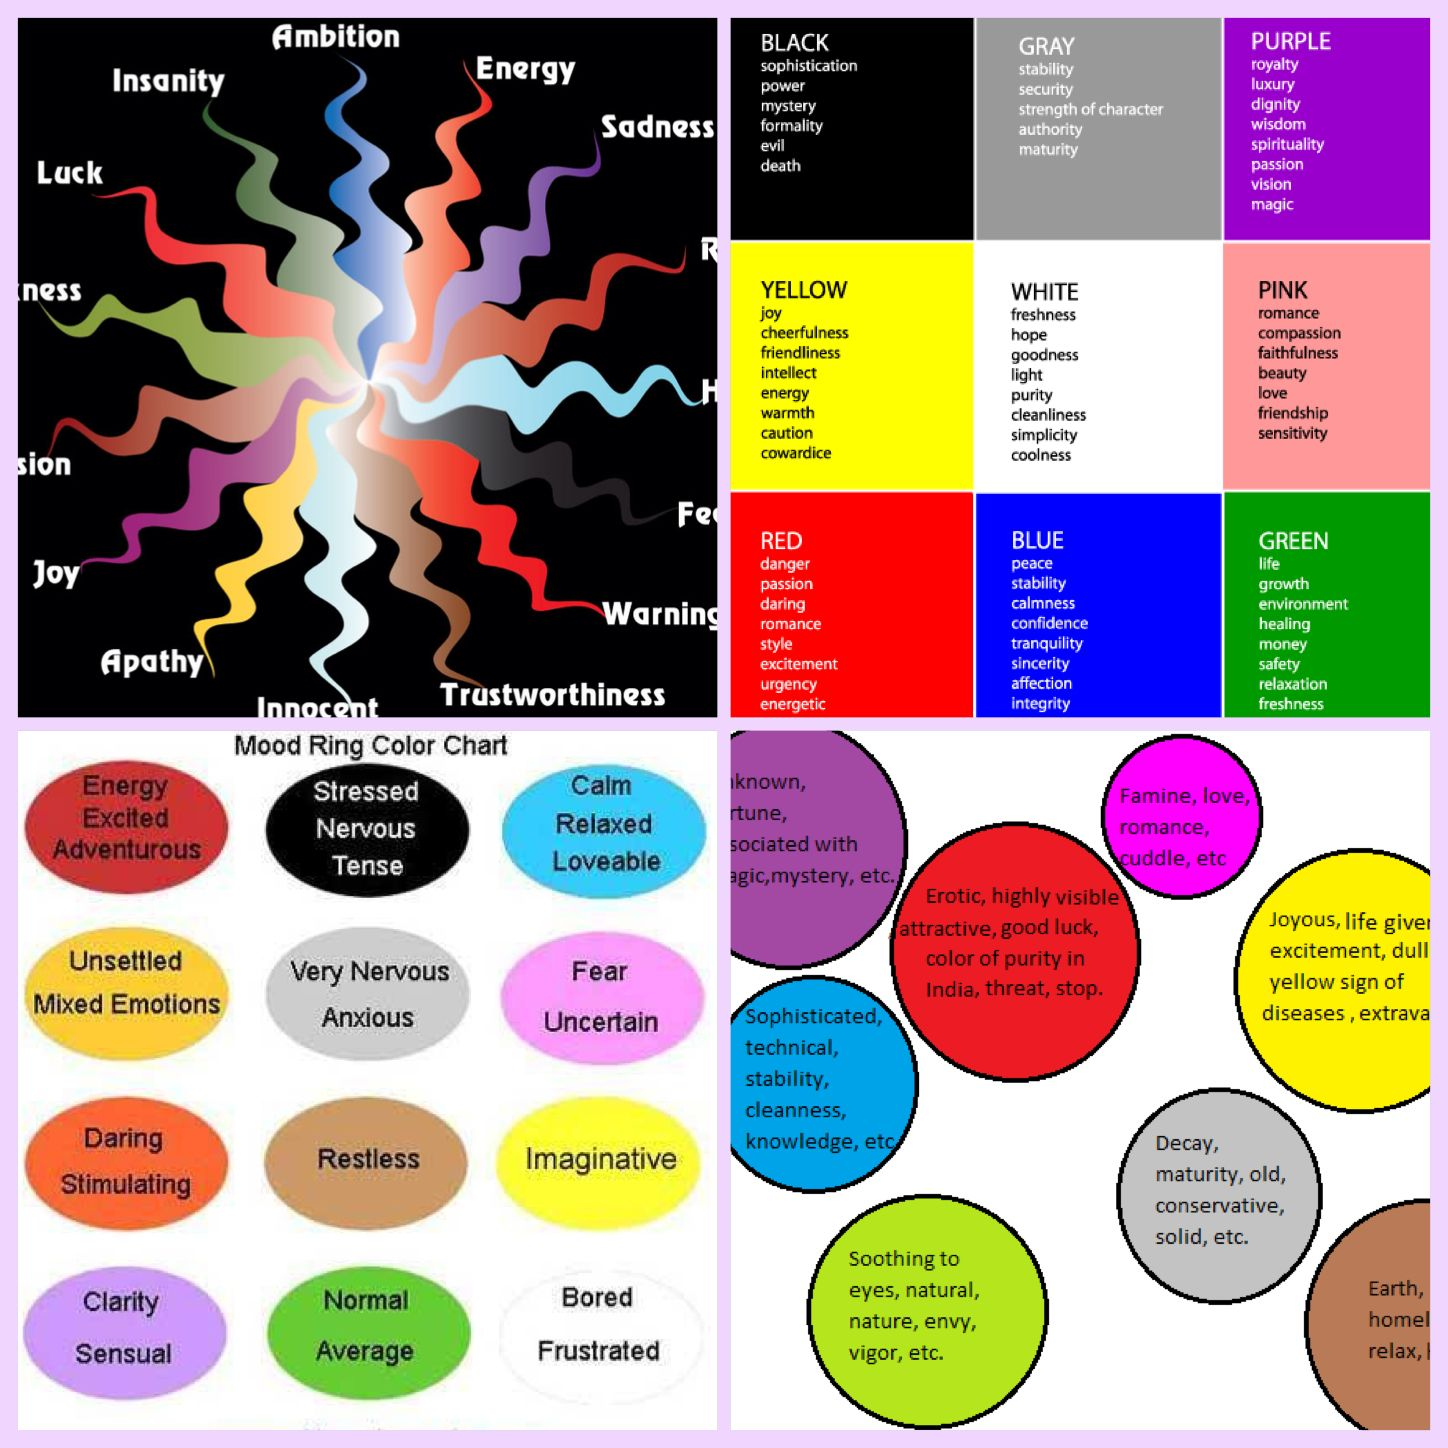 Marrose ccc crochet mood blanket 2014 greatest stuff ever mood ring color meanings chart with details theweddingpress nvjuhfo Image collections